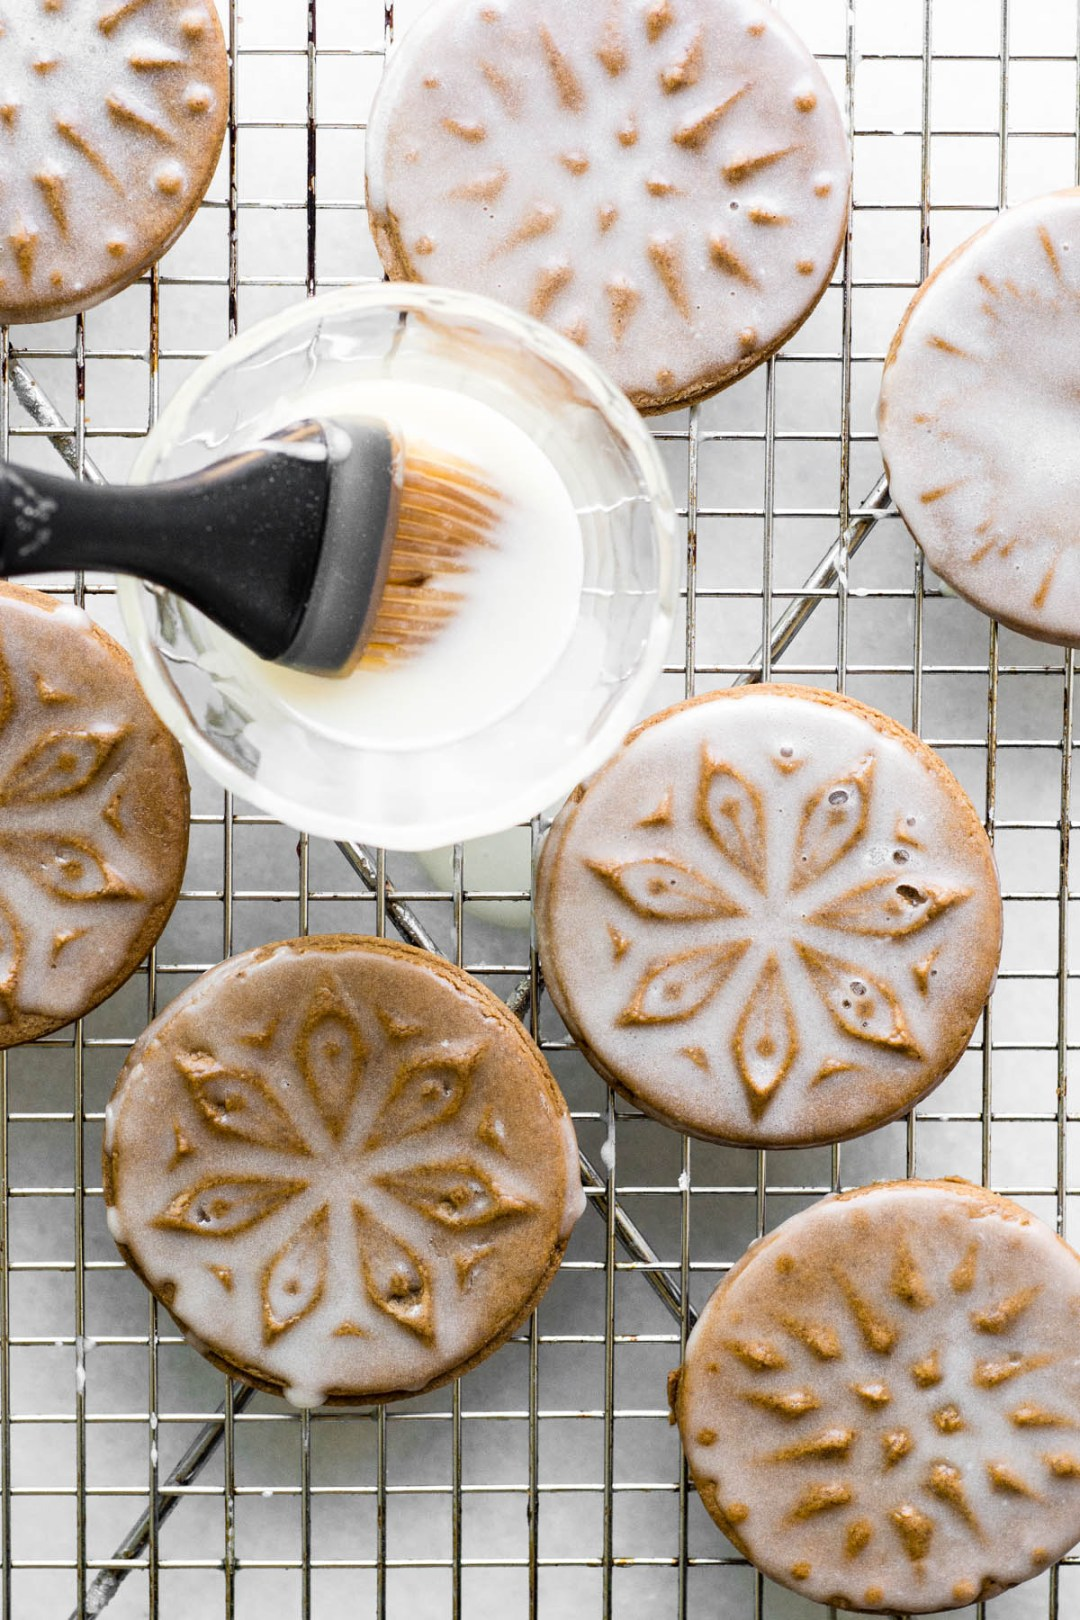 Soft Glazed Gingerbread Cookies being brushed with glaze